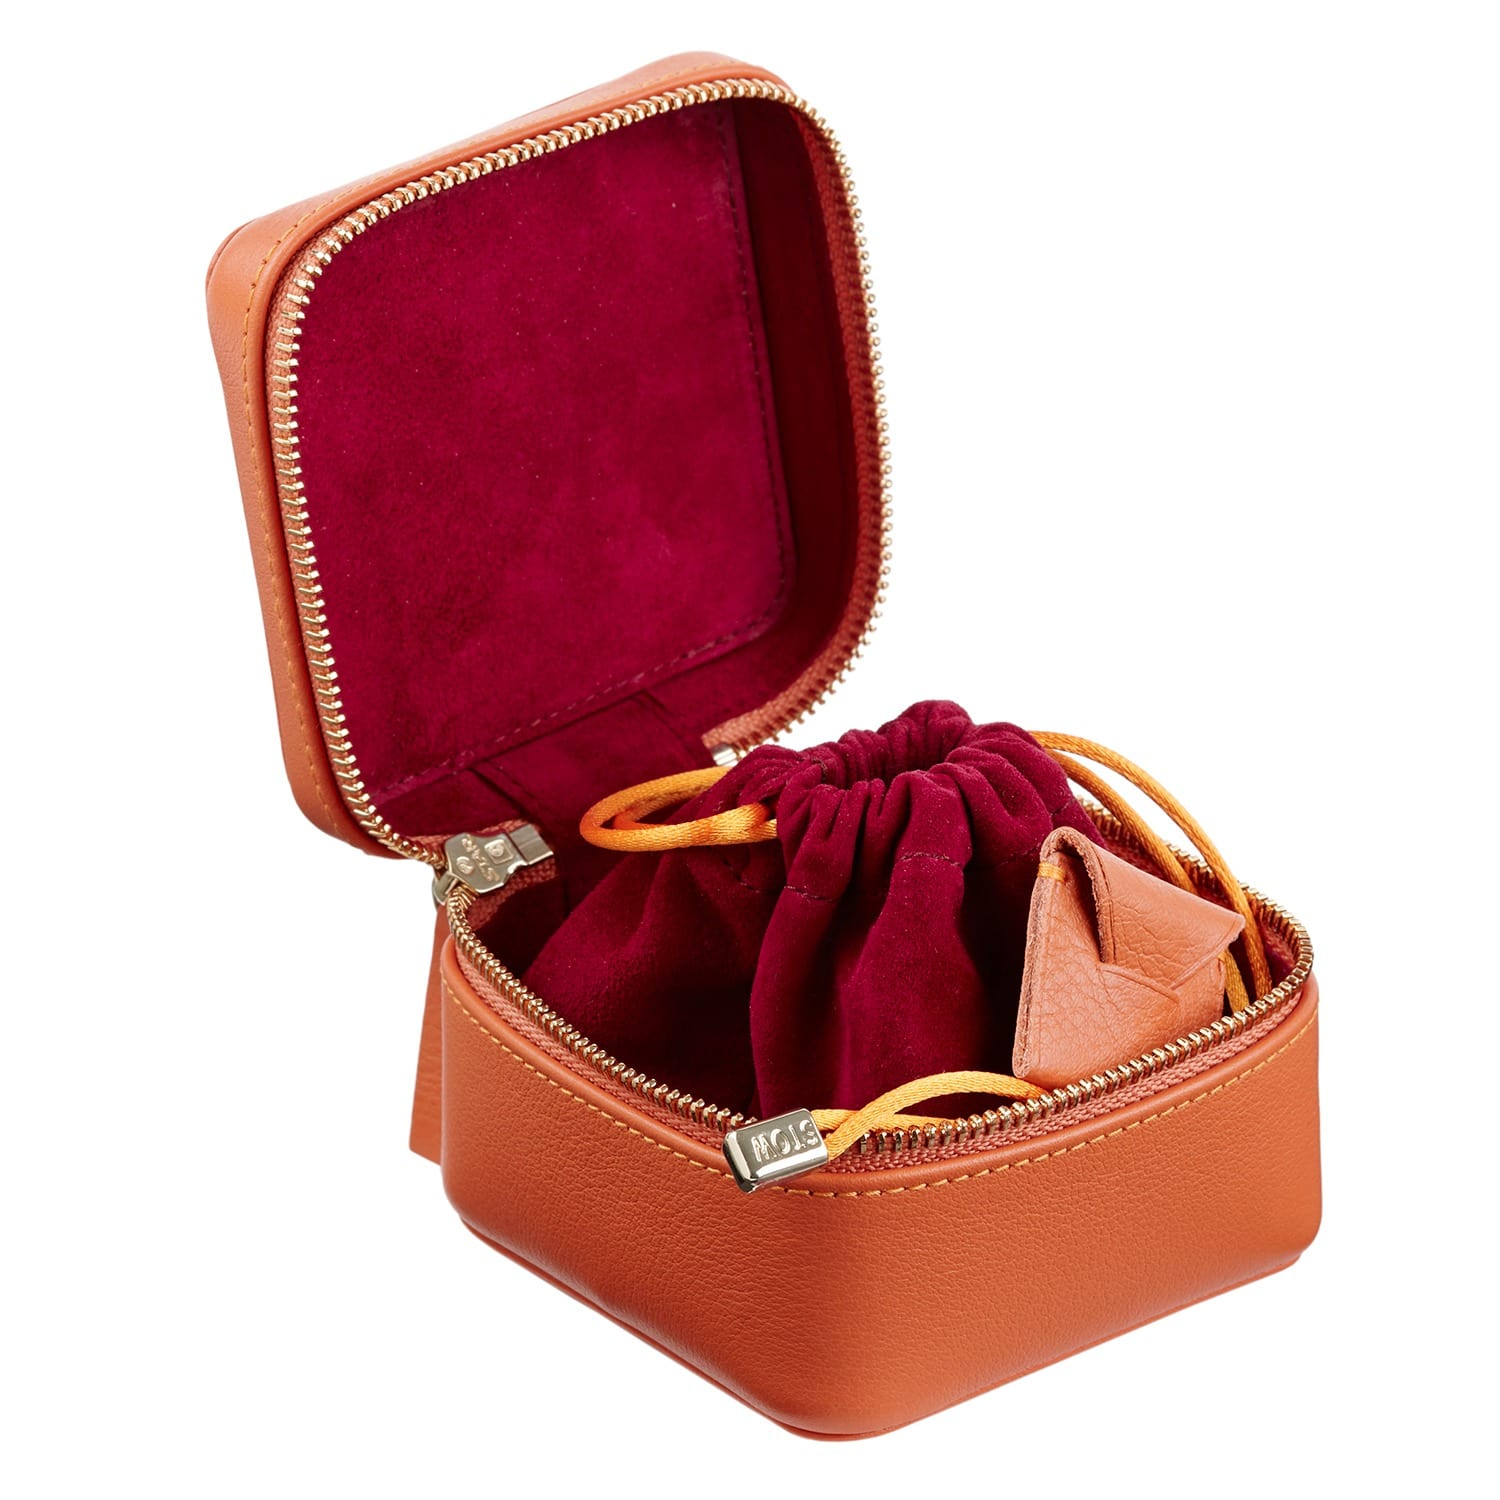 41199baef Soft Leather Hester Travel Jewellery Box Amber Orange & Berry | Stow ...